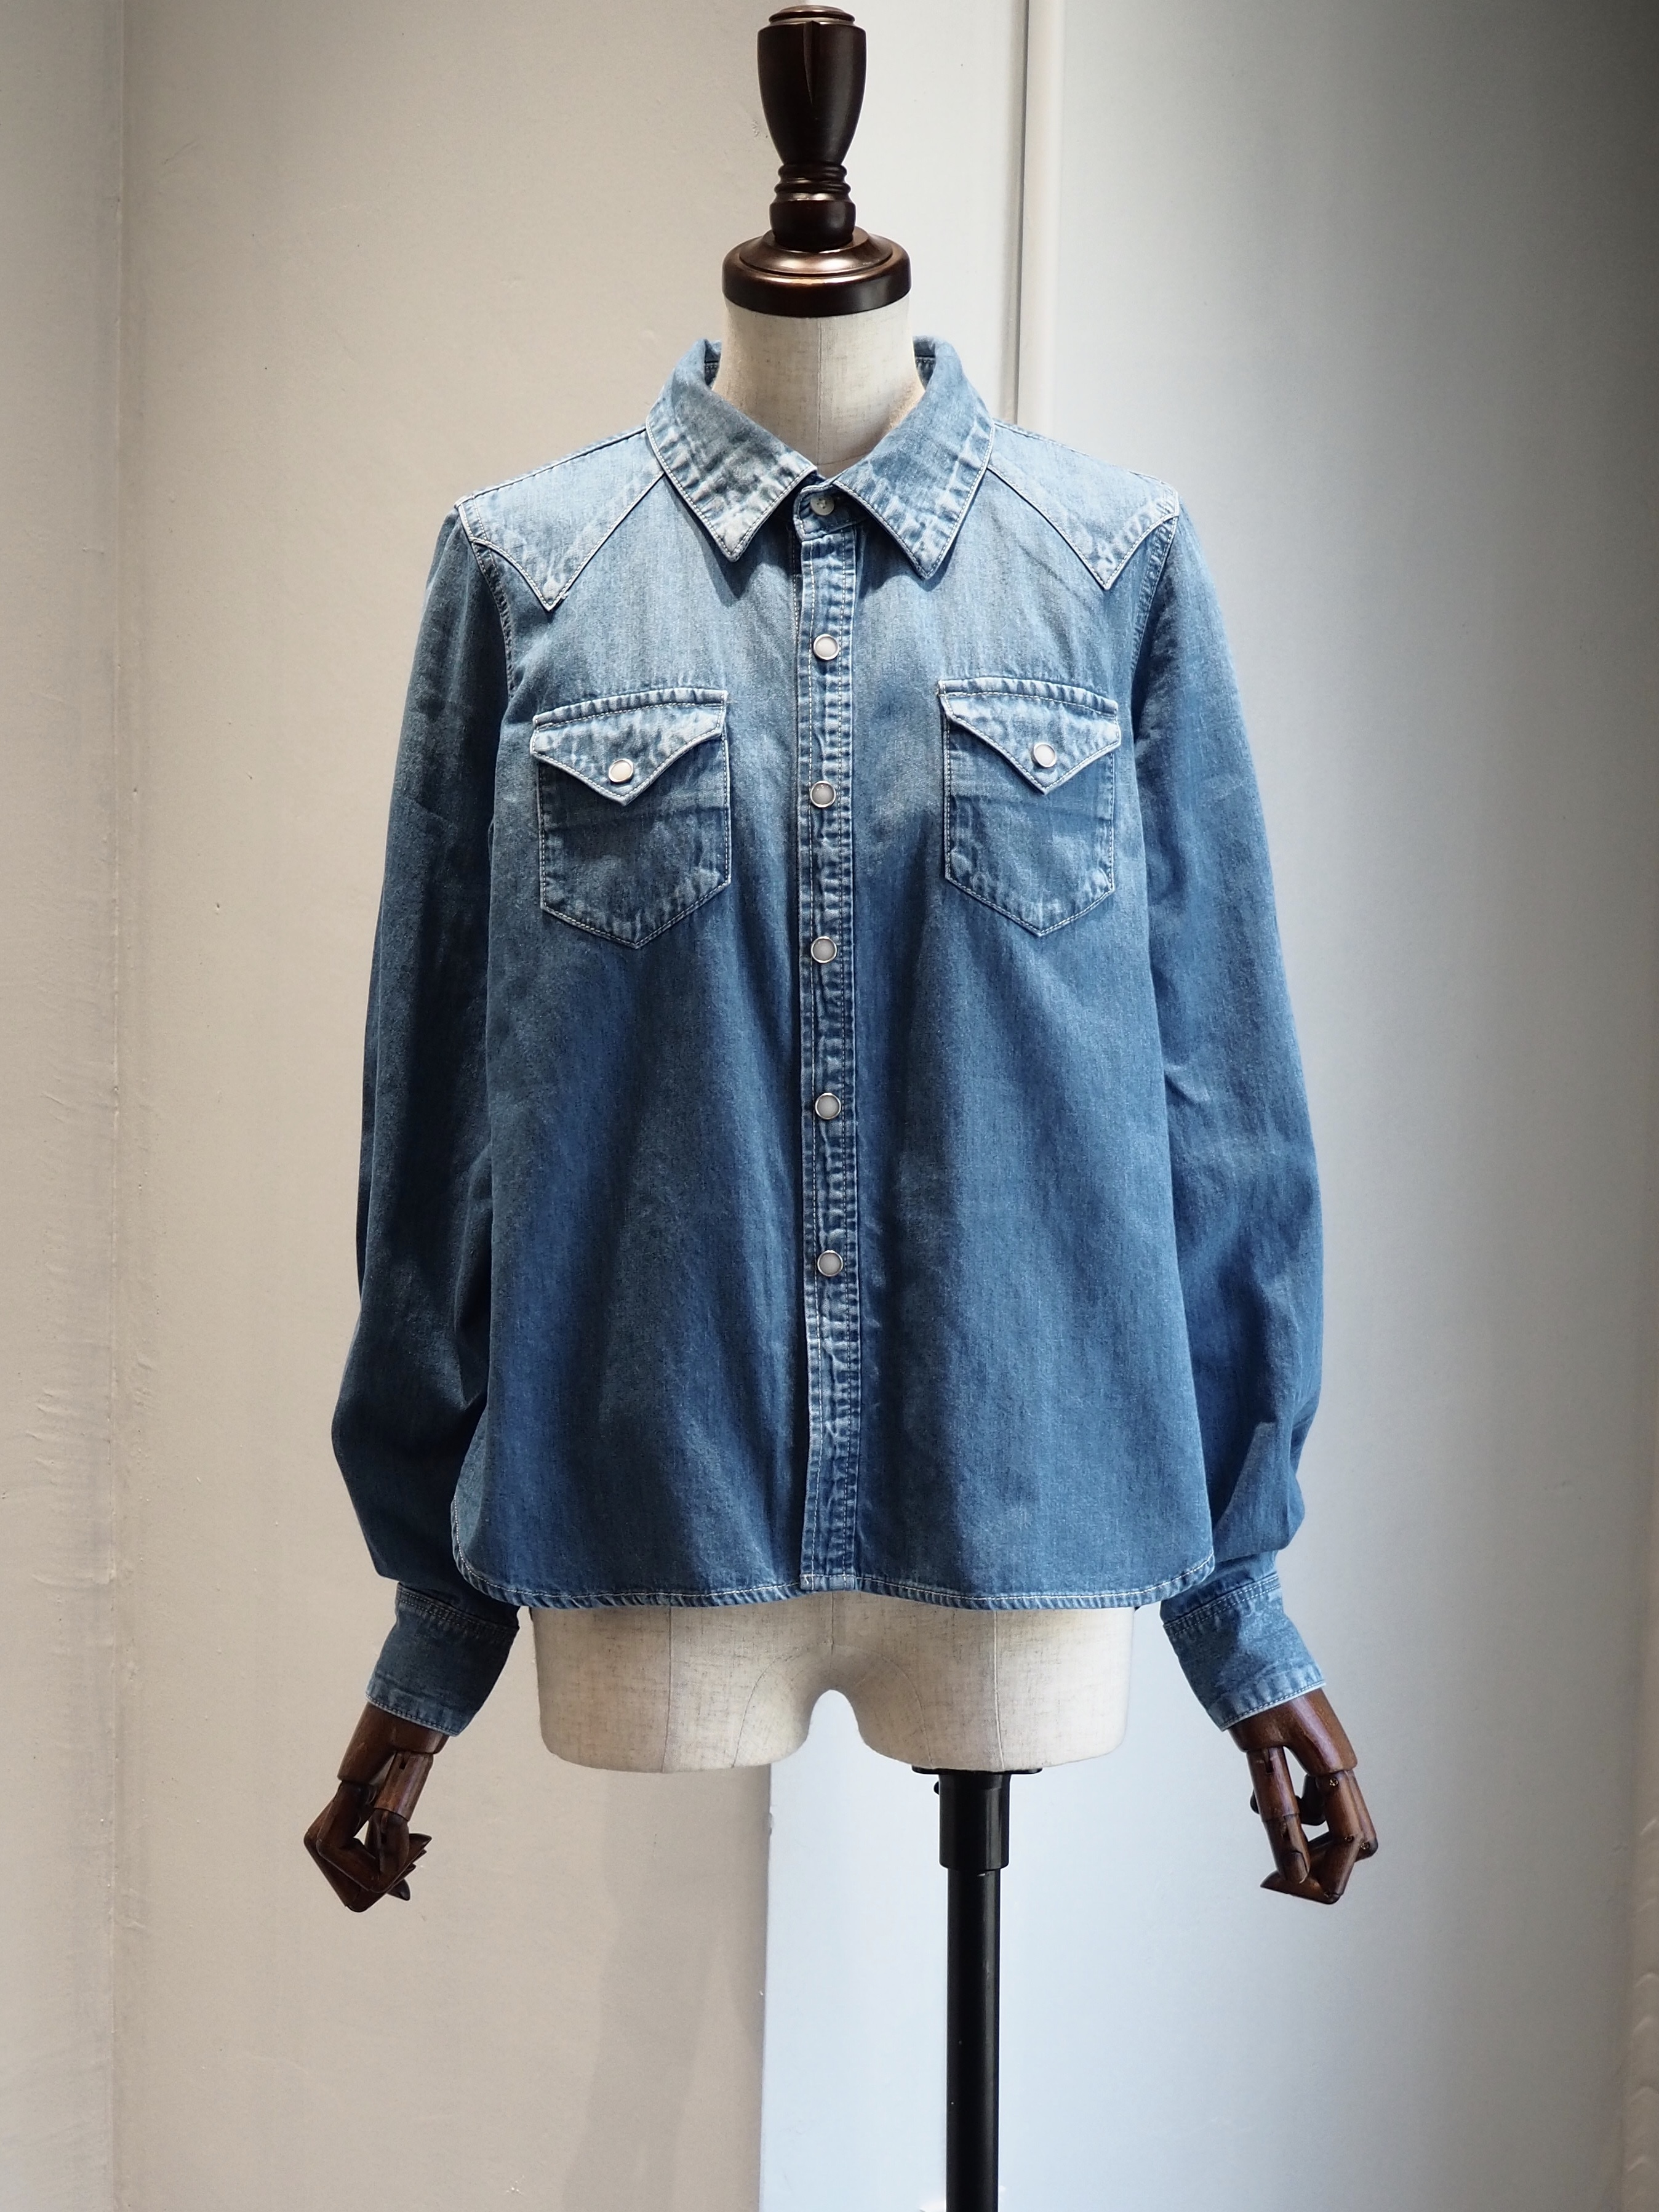 【ENLIGHTENMENT】DENIM WESTERN  SHIRT